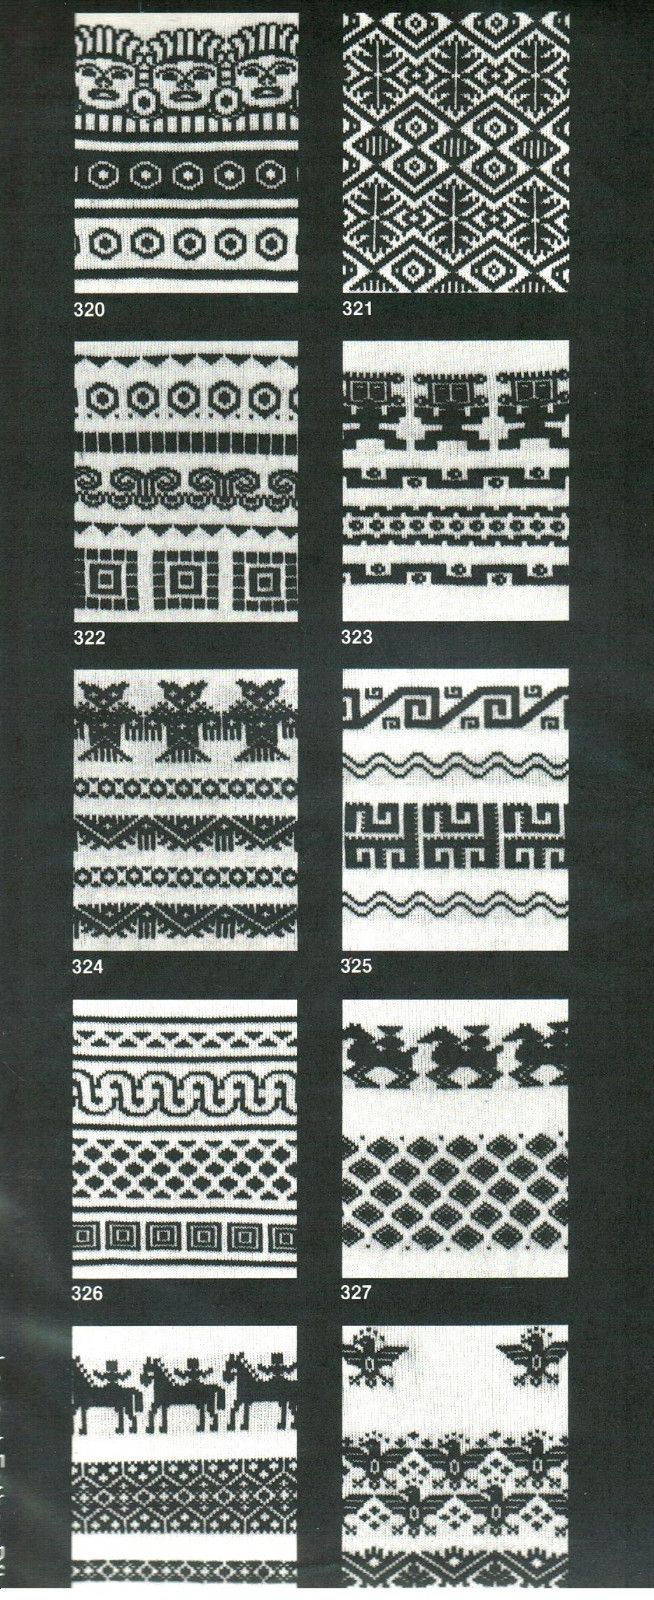 Machine Knitting 10 Handy Punch Patterns Regine Faust s 320 Mexican Designs New | eBay